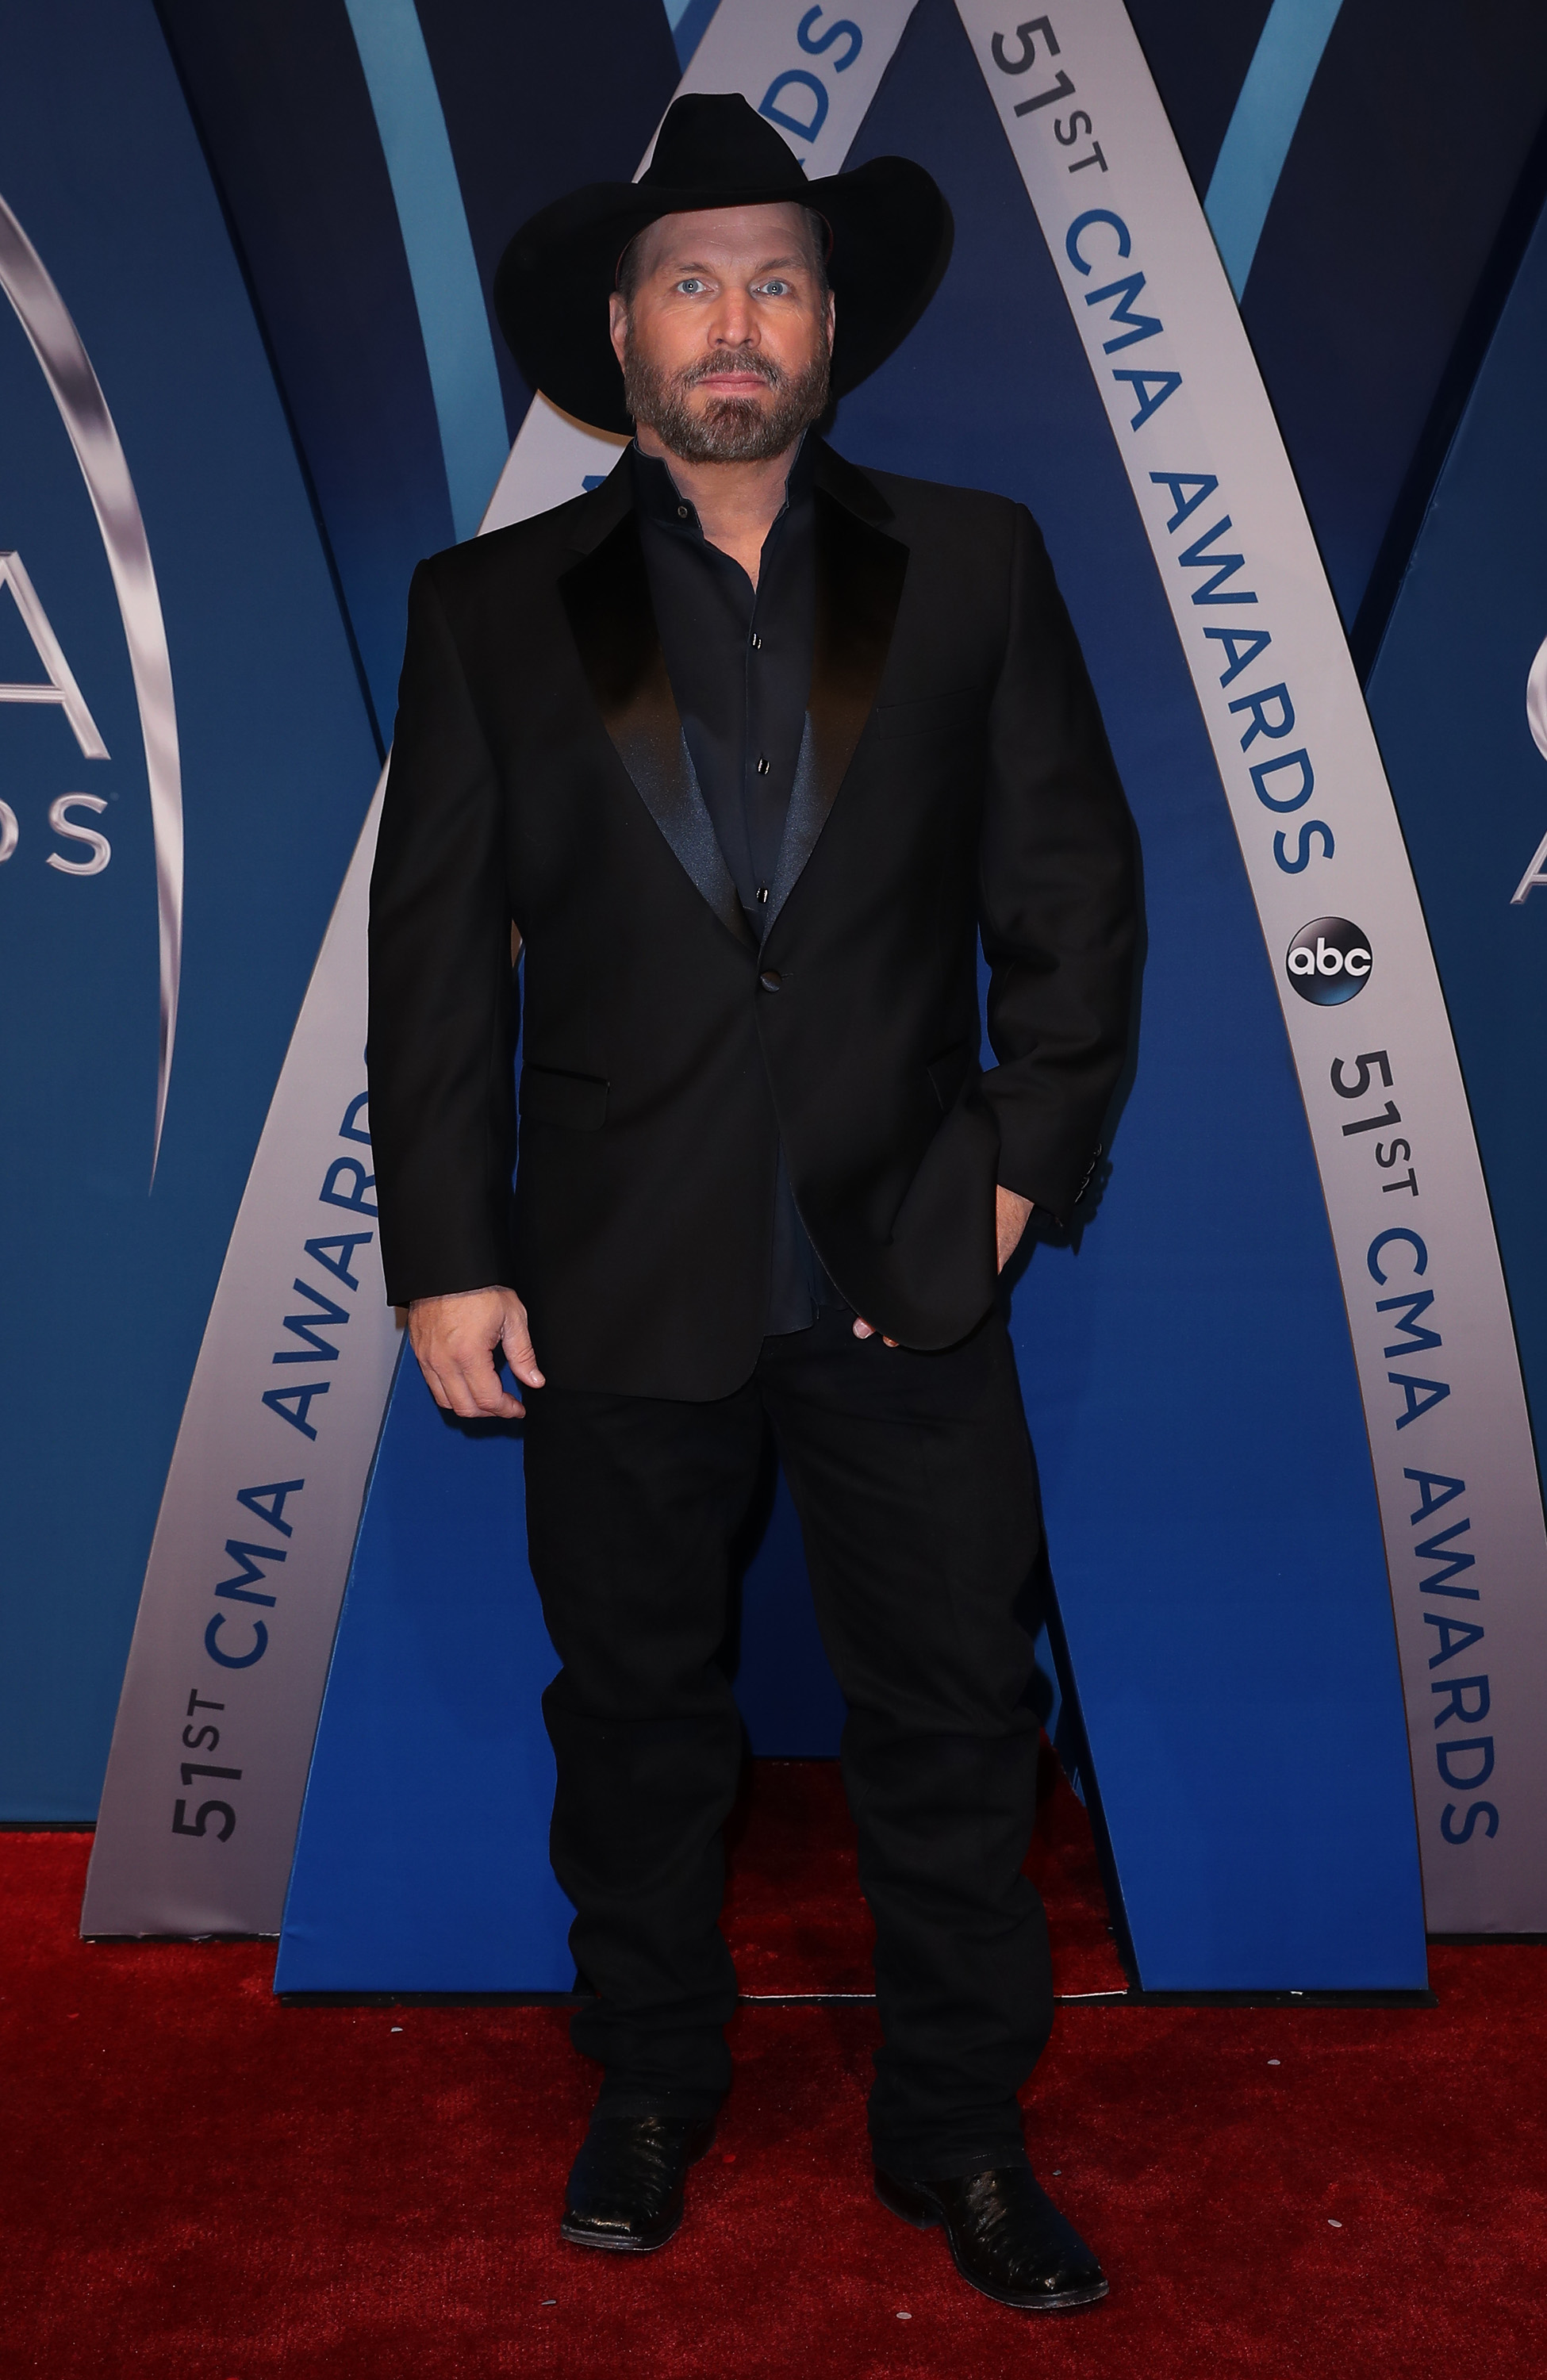 51st CMA Awards Arrivals at Music City Center                                                                      Featuring: Garth Brooks                                   Where: Nashville, Tennessee, United States                                   When: 08 Nov 2017                                   Credit: Judy Eddy/WENN.com